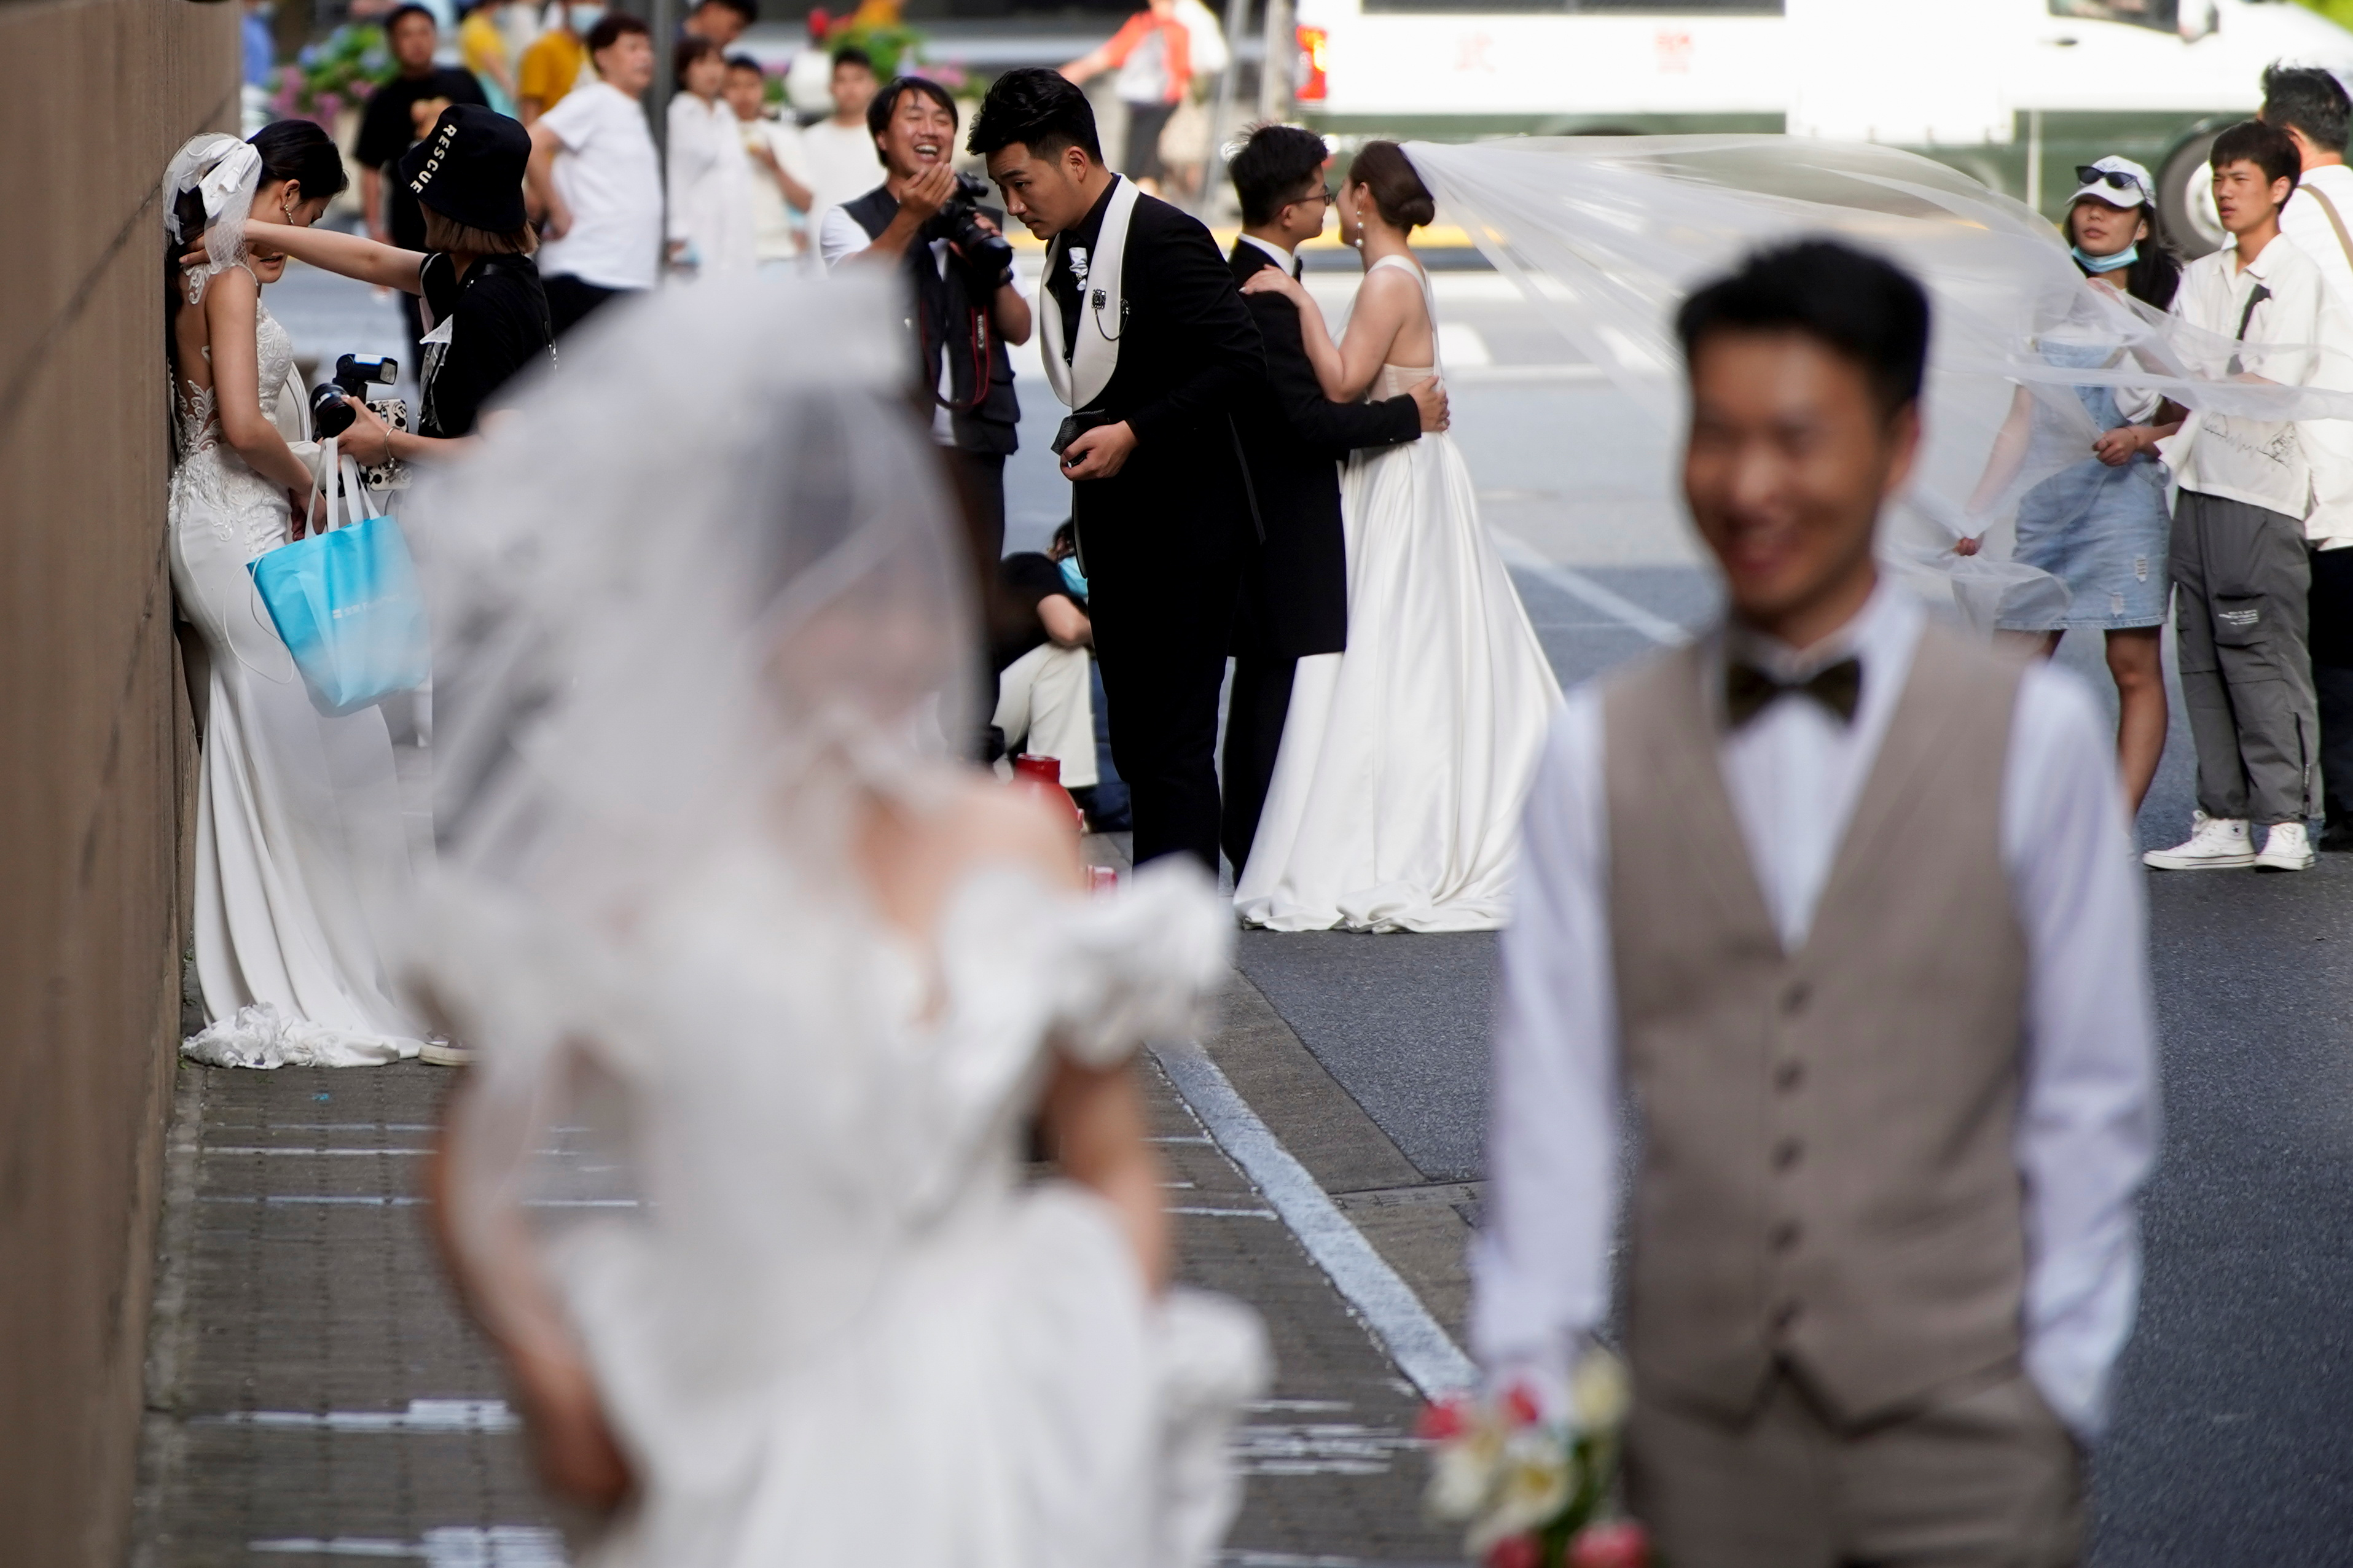 Couples prepare to get their photo taken during a wedding photography shoot on a street, amid the coronavirus disease (COVID-19) pandemic, in Shanghai, China May 31, 2021. REUTERS/Aly Song